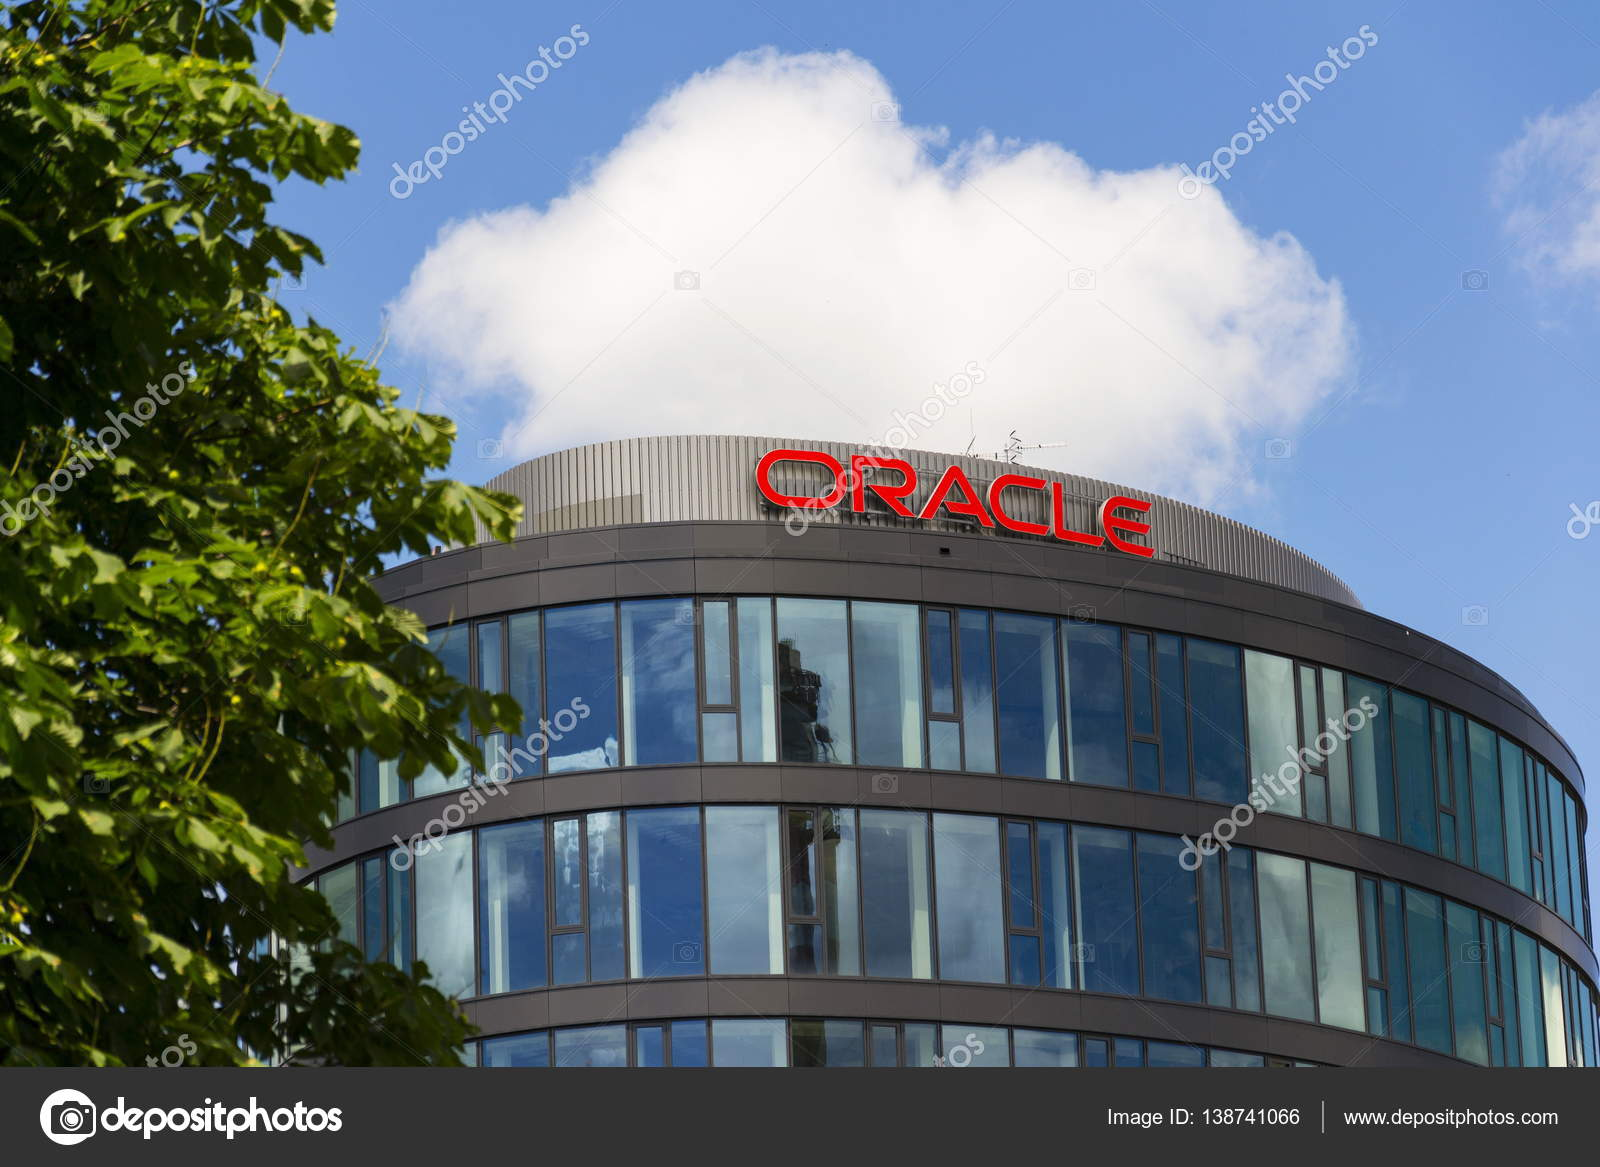 Oracle company logo on headquarters building on June 18